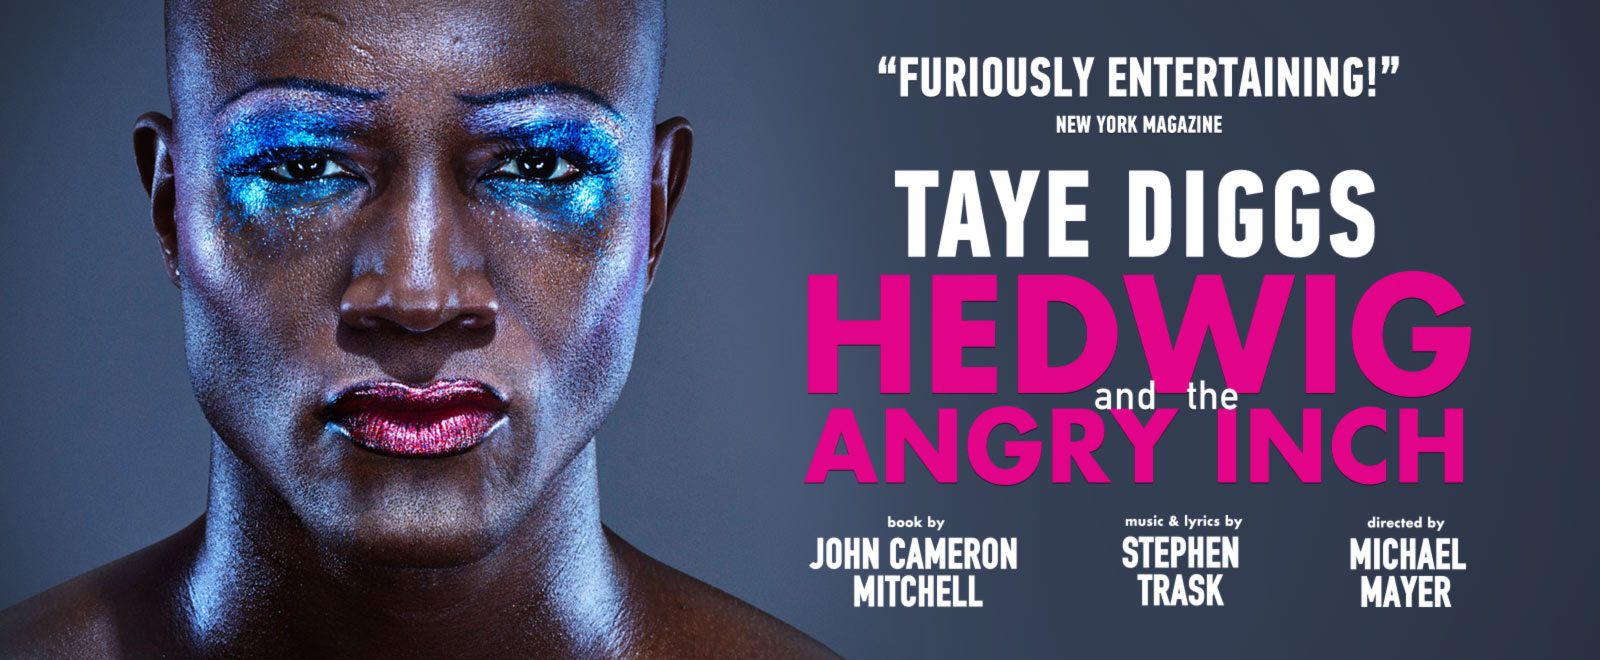 Taye Diggs is Hedwig and the angry inch musical show broadway Belasco Theatre new york city